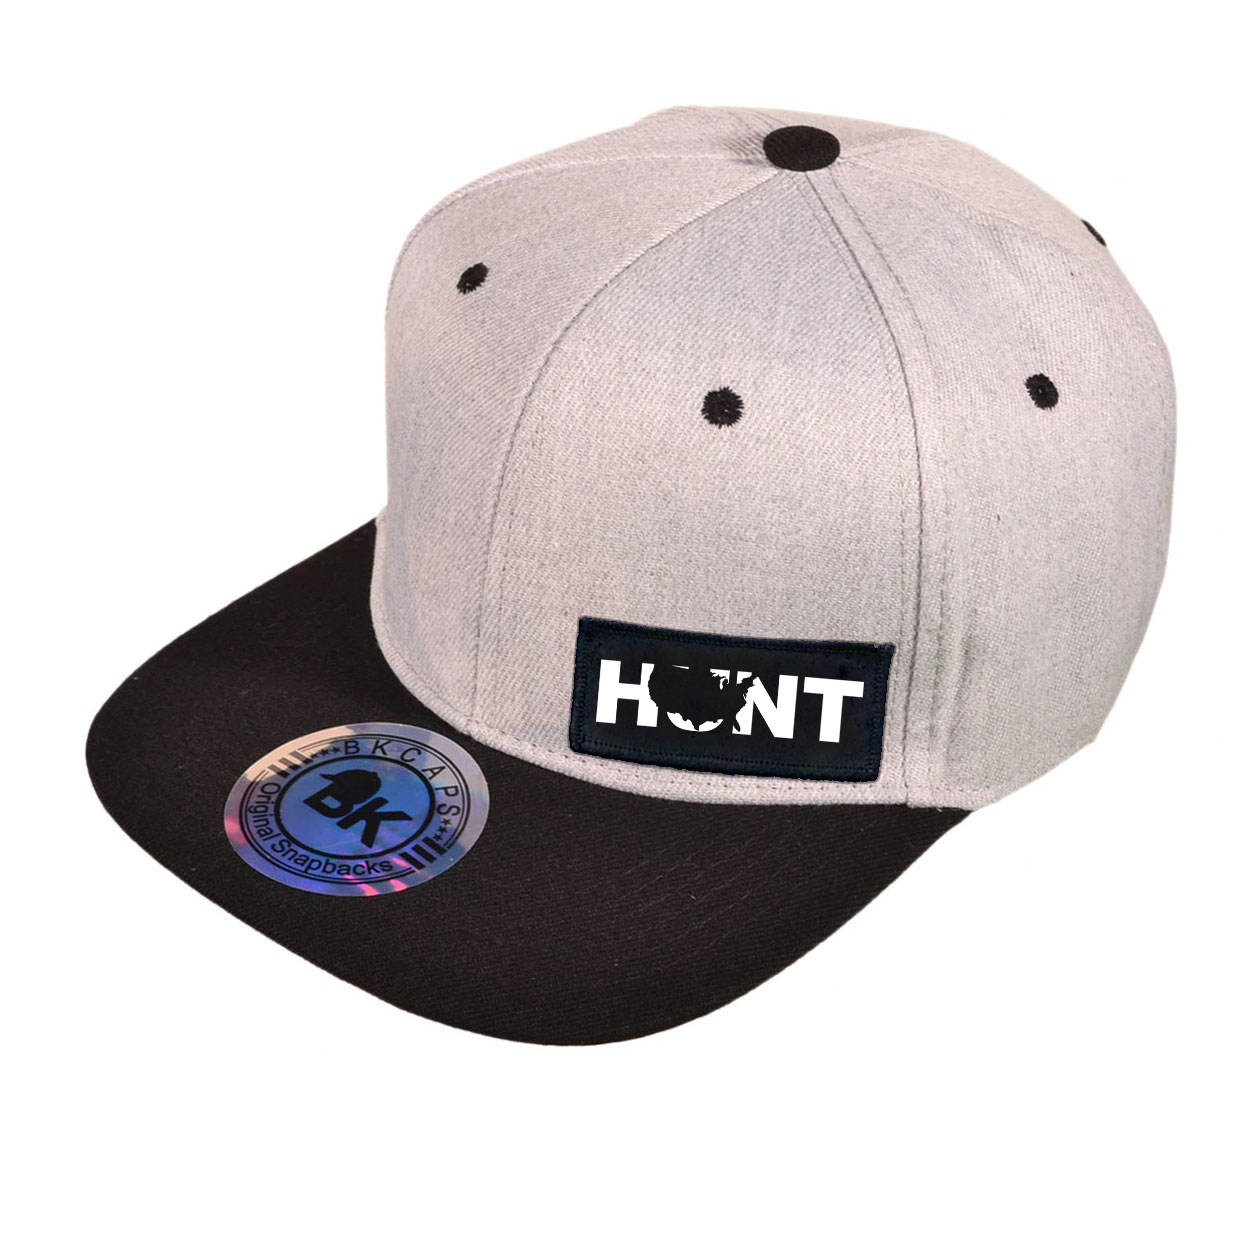 Hunt United States Night Out Woven Patch Snapback Flat Brim Hat Heather Gray/Black (White Logo)